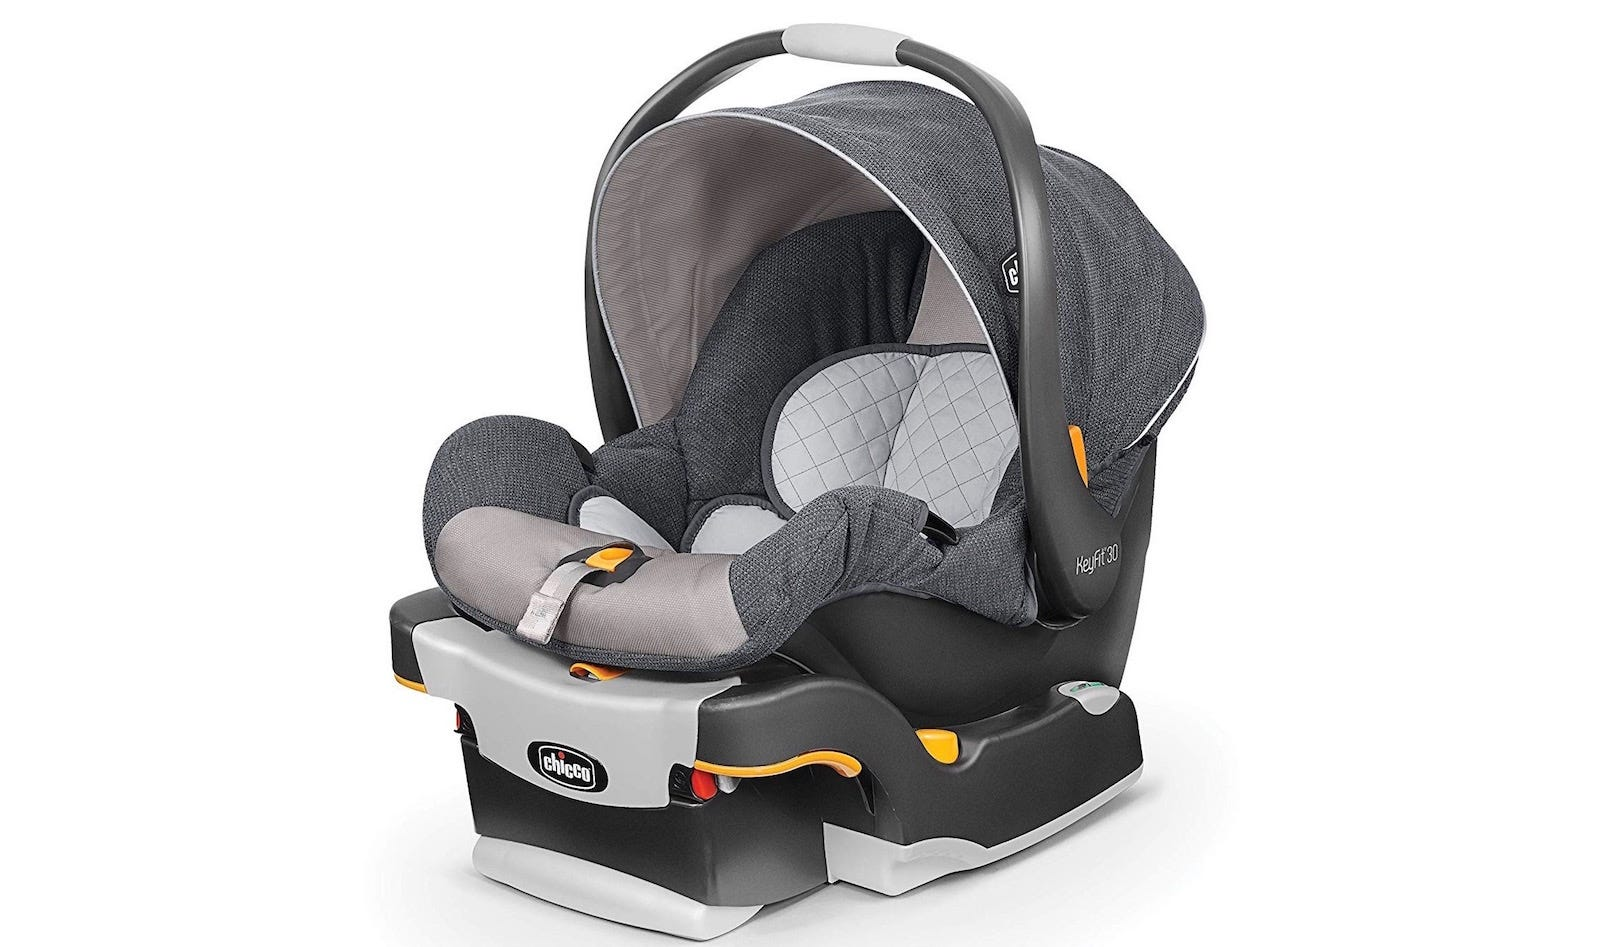 The Chicco KeyFit 30 Infant Car Seat.